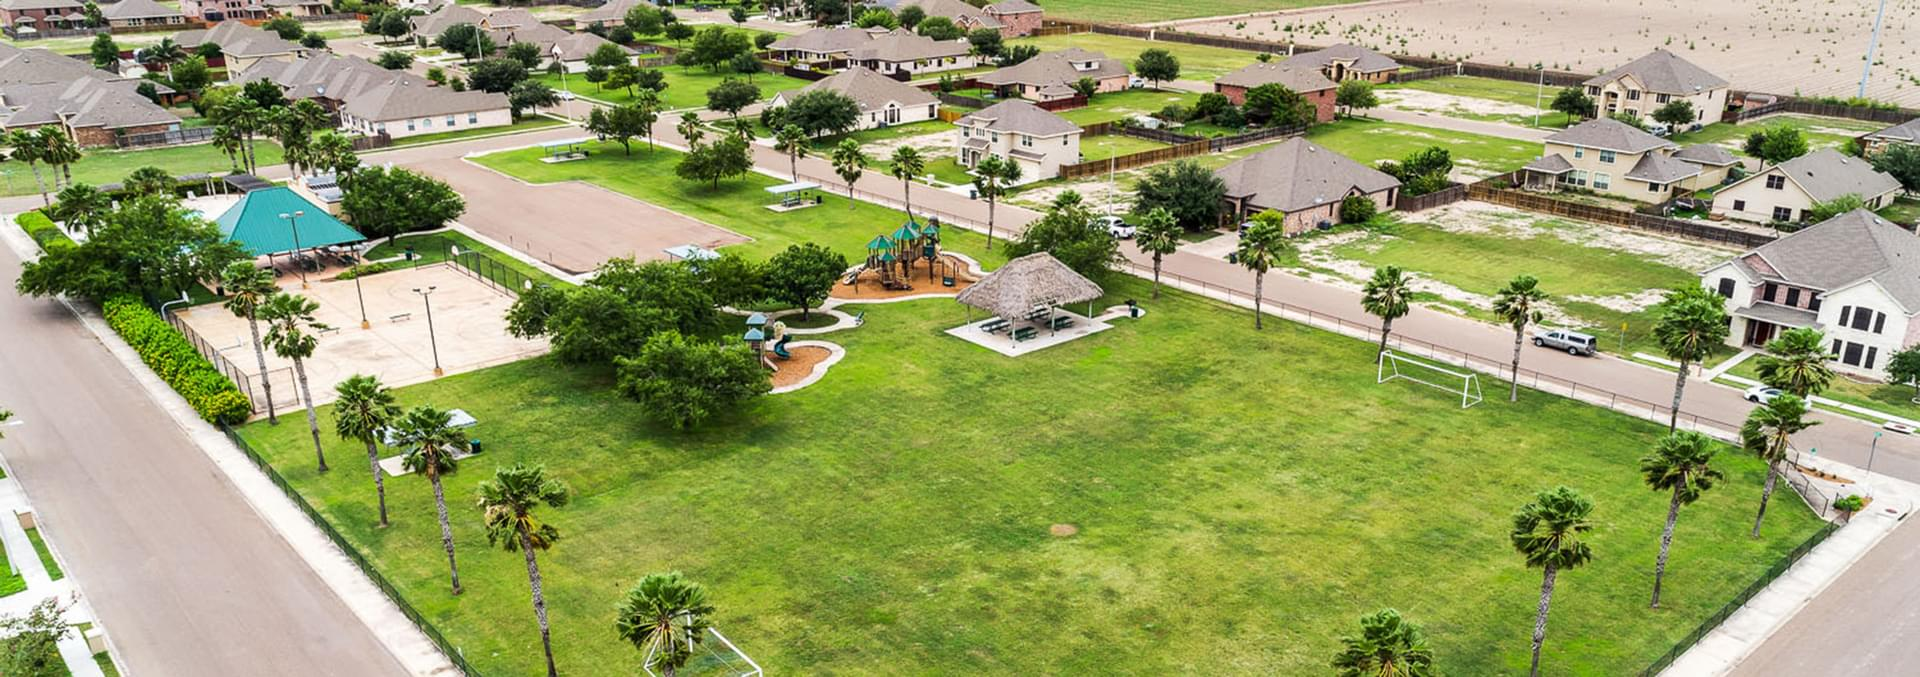 Tanglewood at Bentsen Palm New Homes in Mission, TX